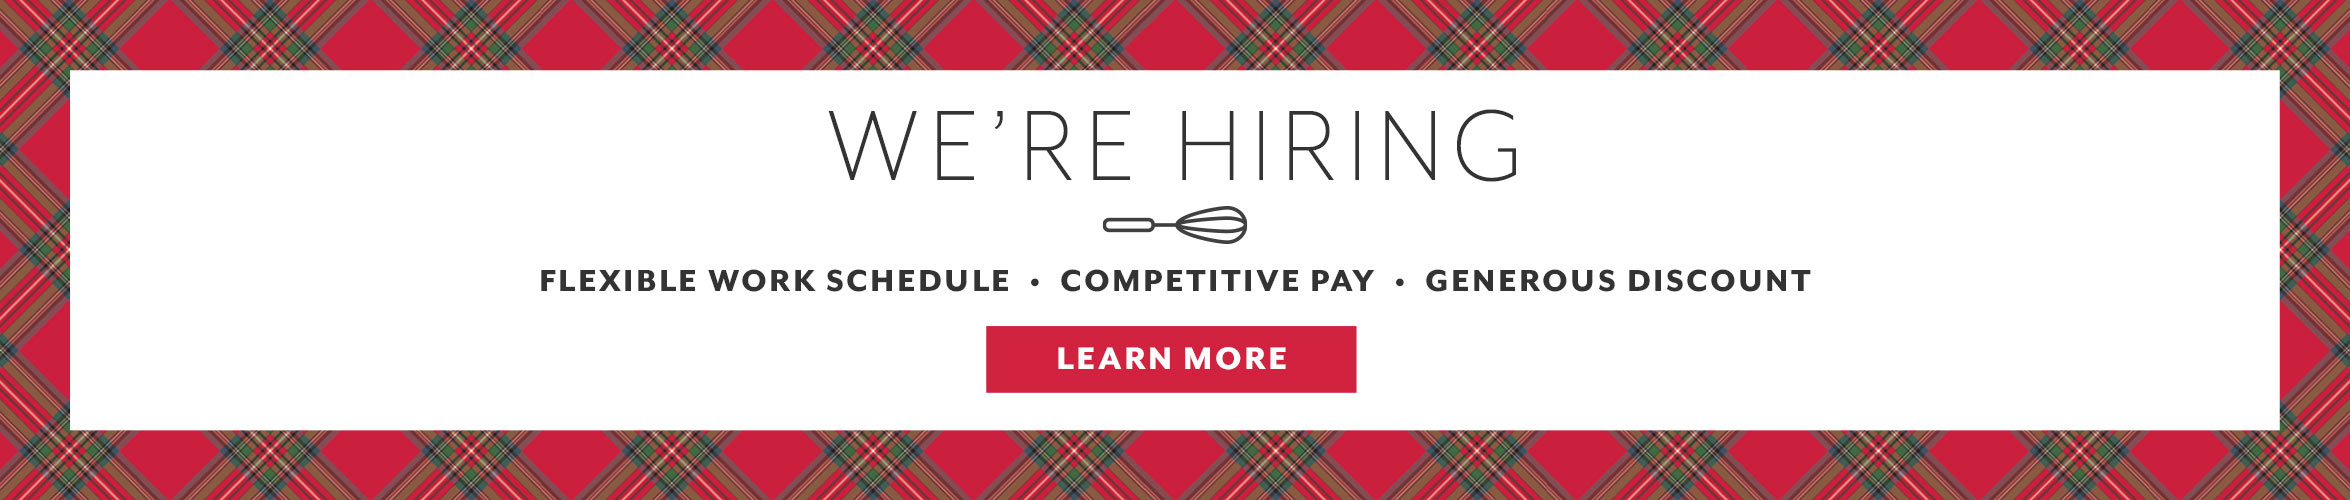 We're Hiring, flexible work schedule, competitive pay, generous discount. Learn More.